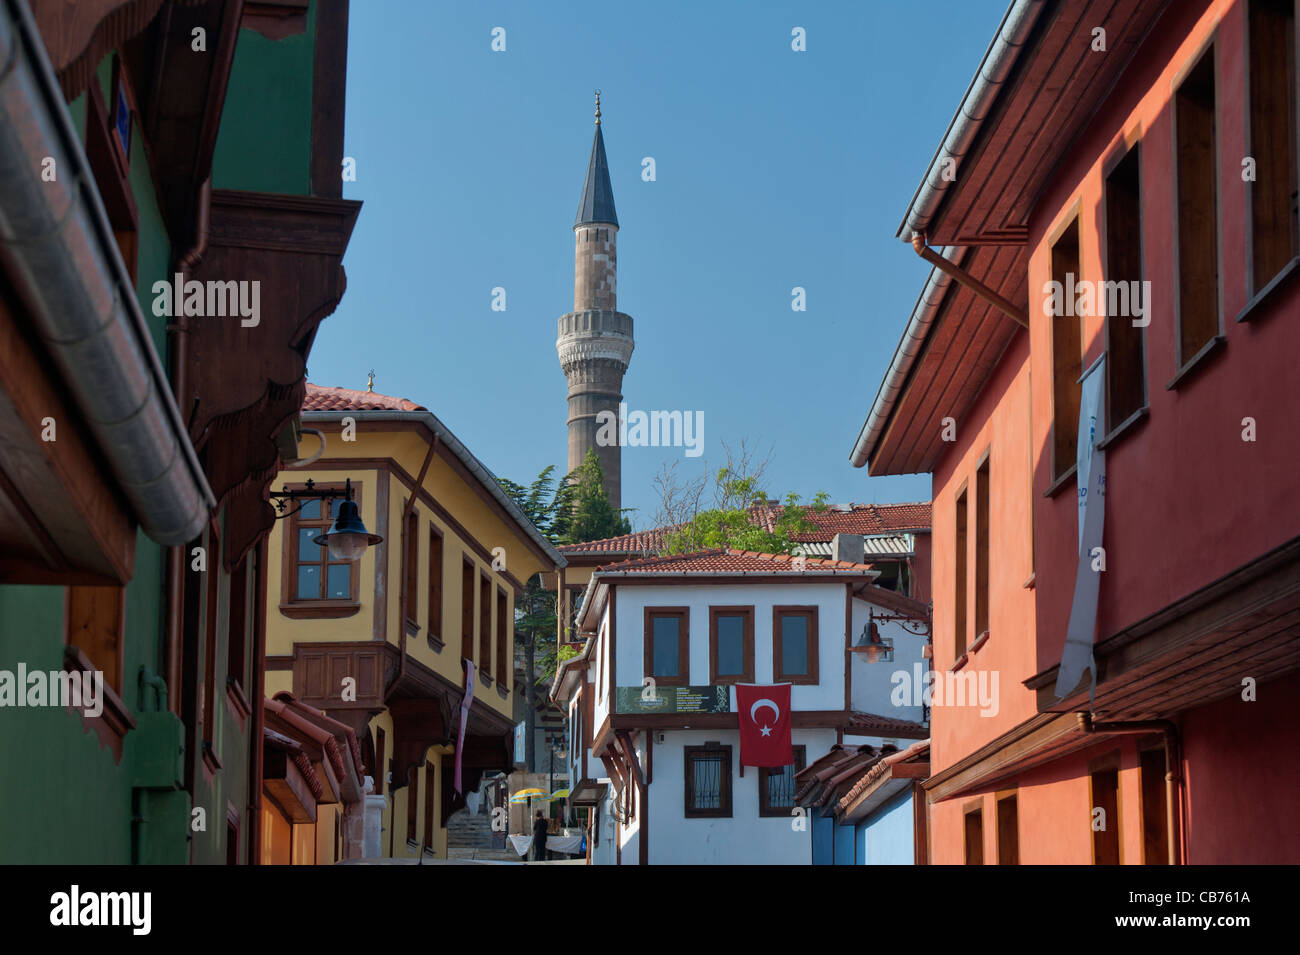 Odunpazarı maisons traditionnelles turques Turquie Eskişehir Photo Stock